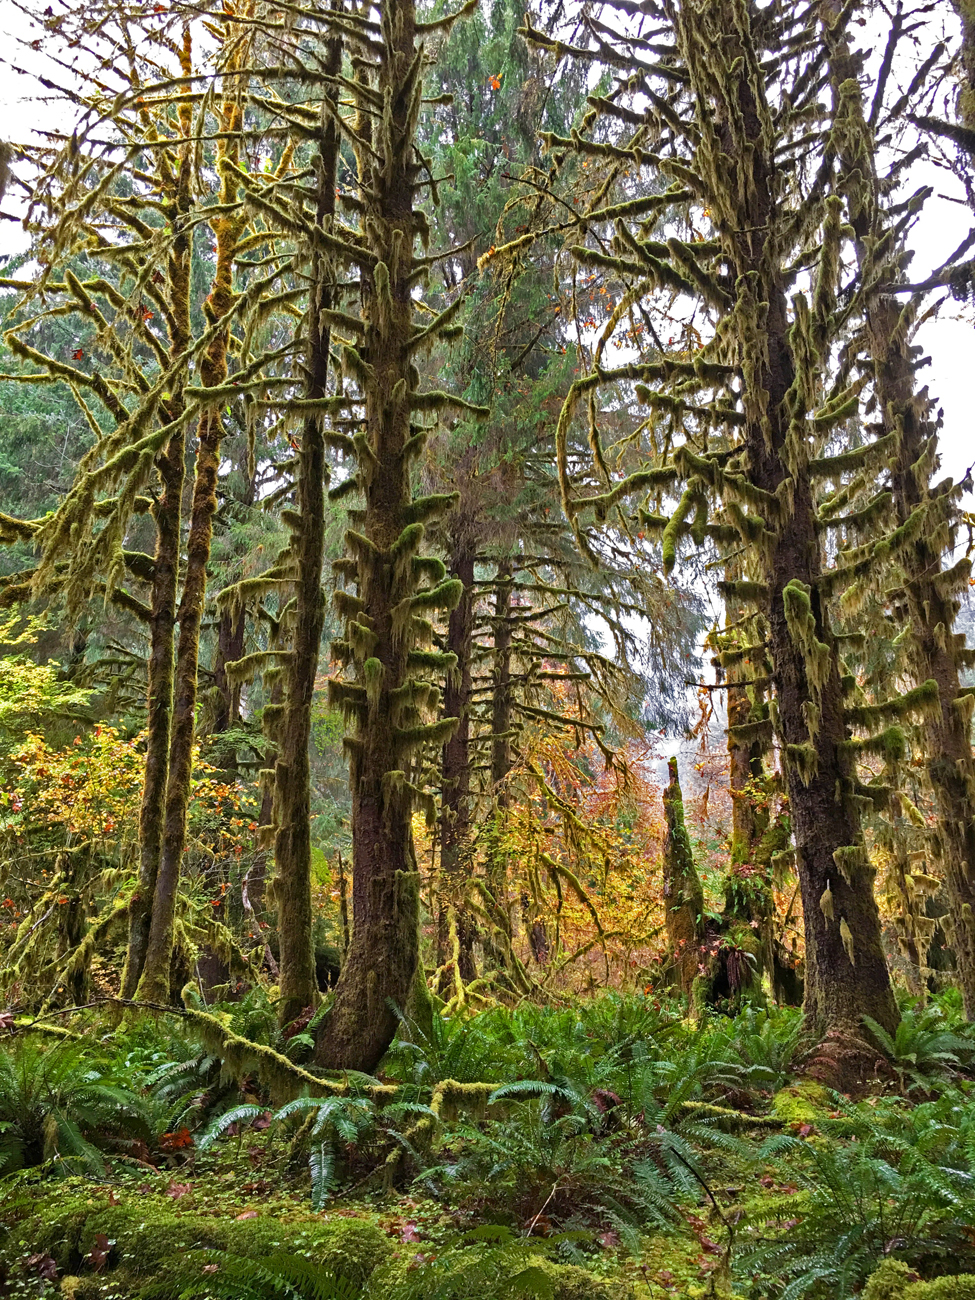 Firs standing tall with moss on their trunks and branches in the Hoh